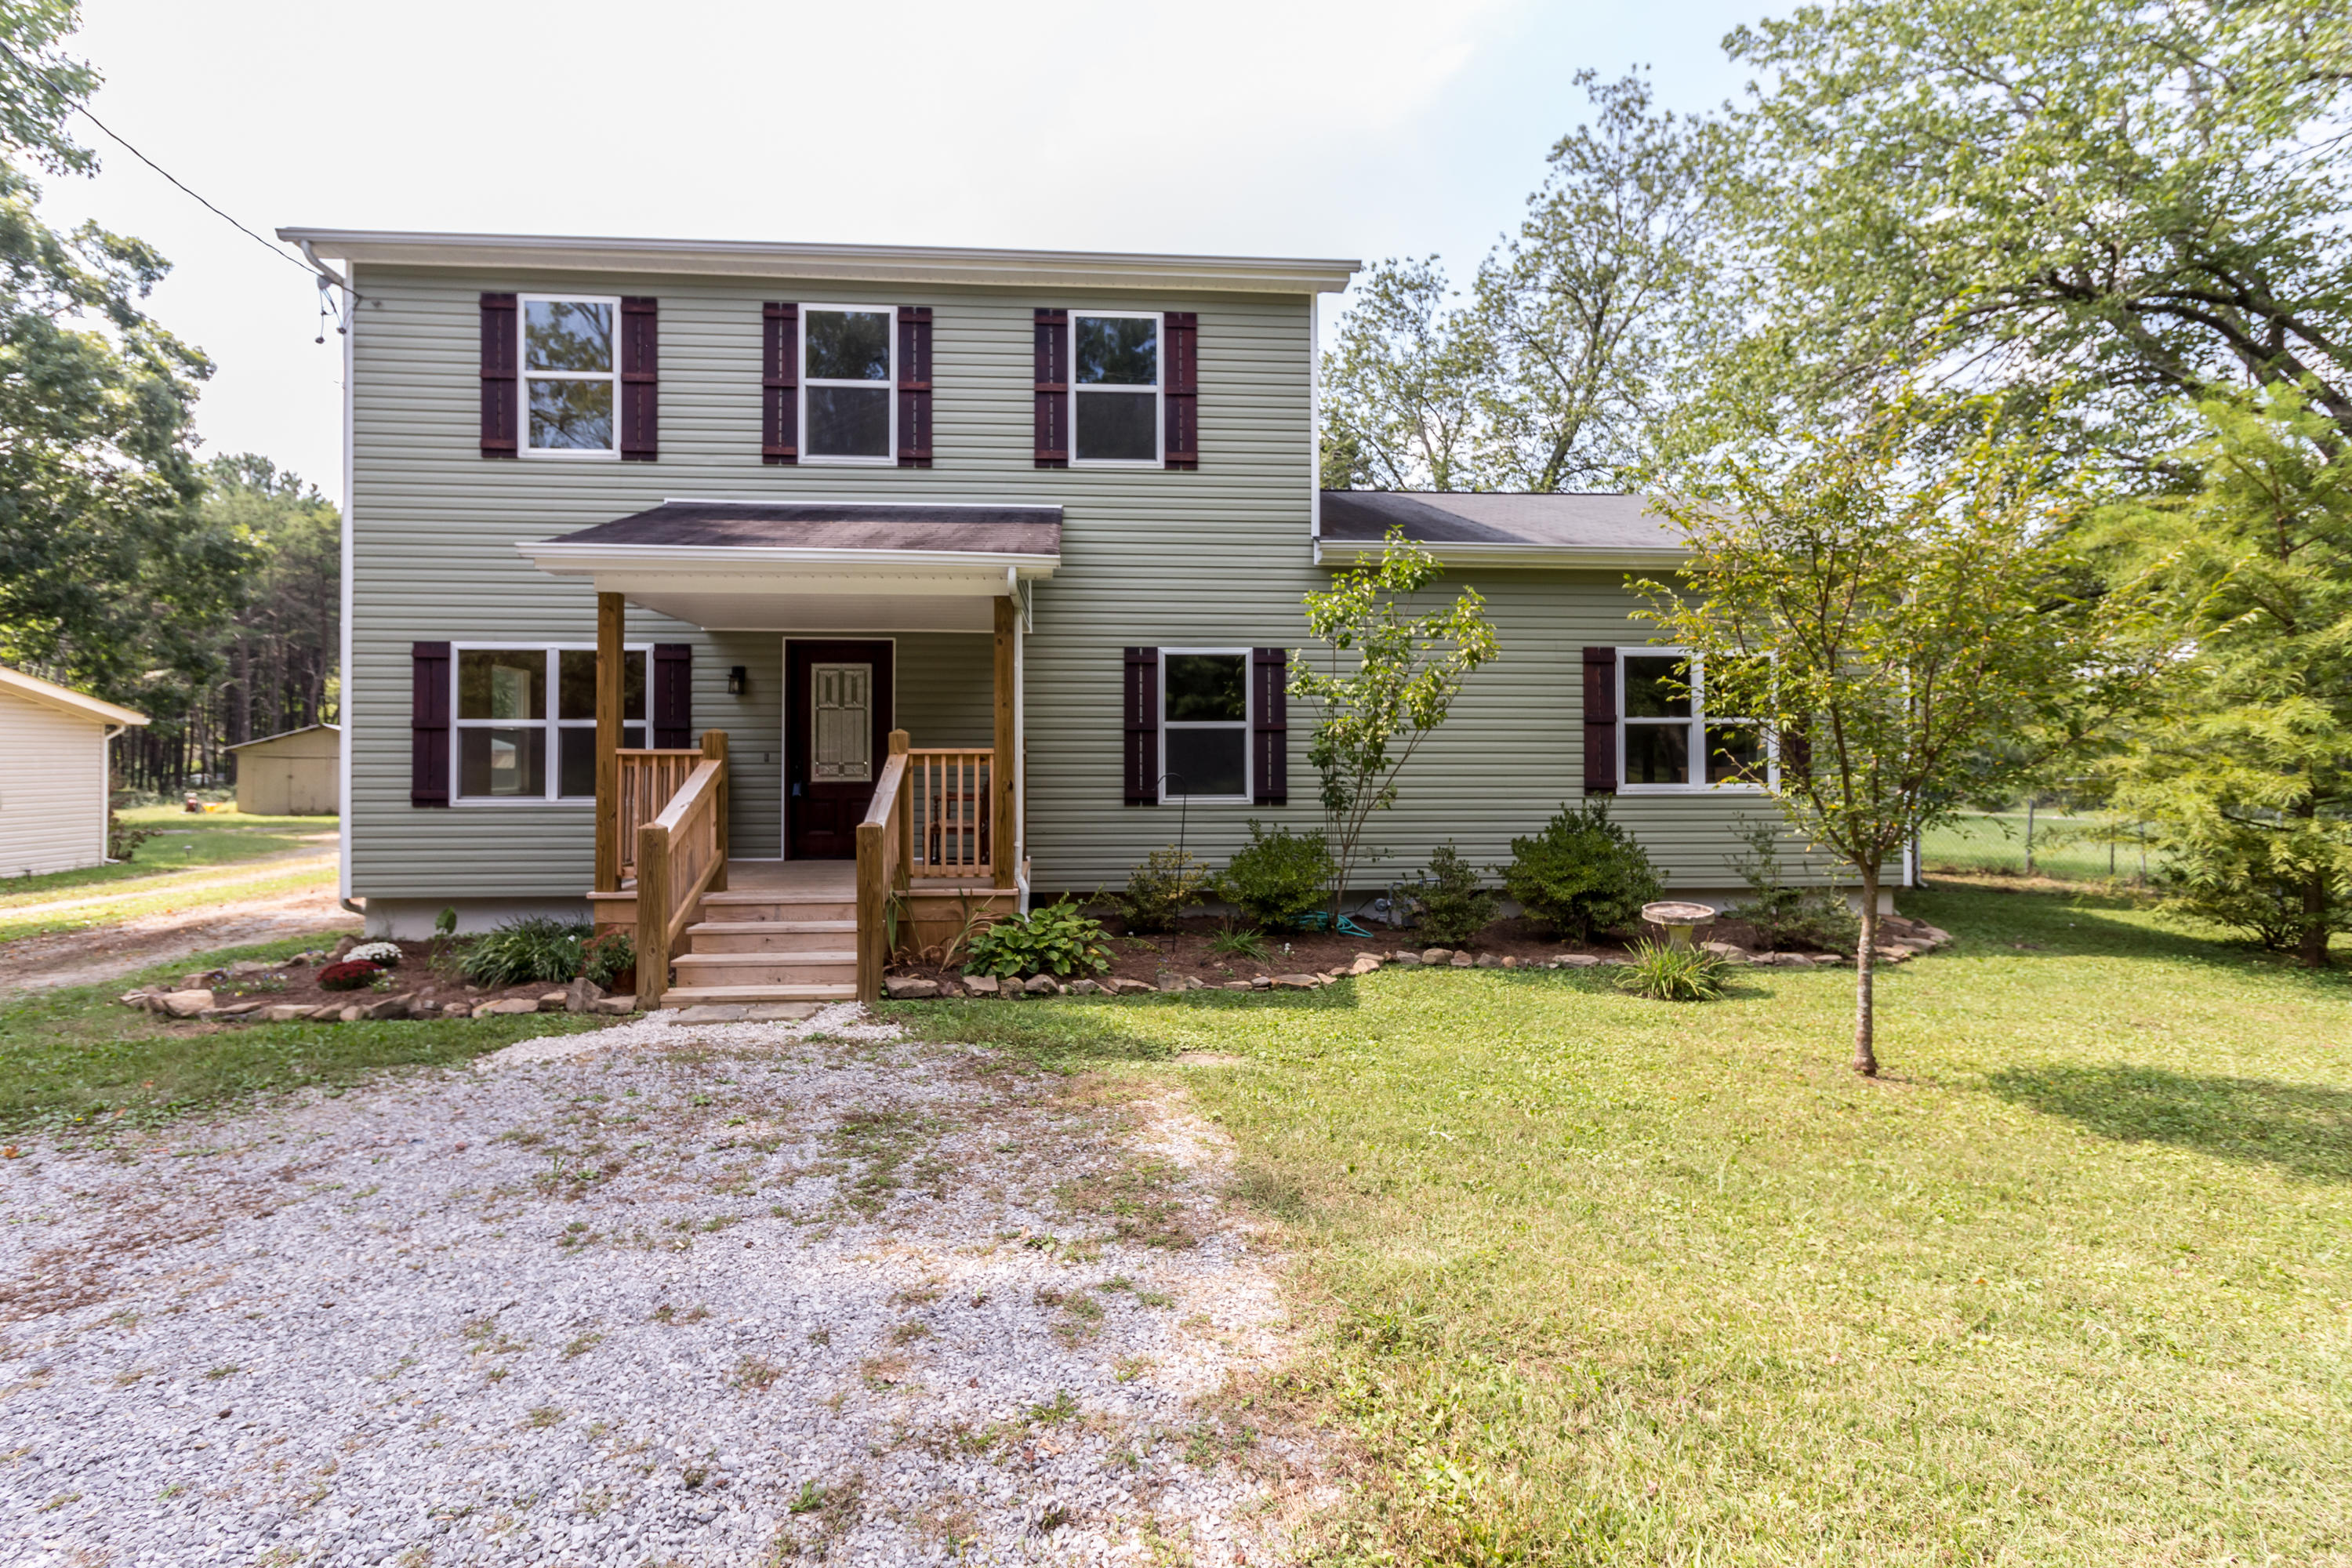 421 Timberlinks Dr, Signal Mountain, TN 37377